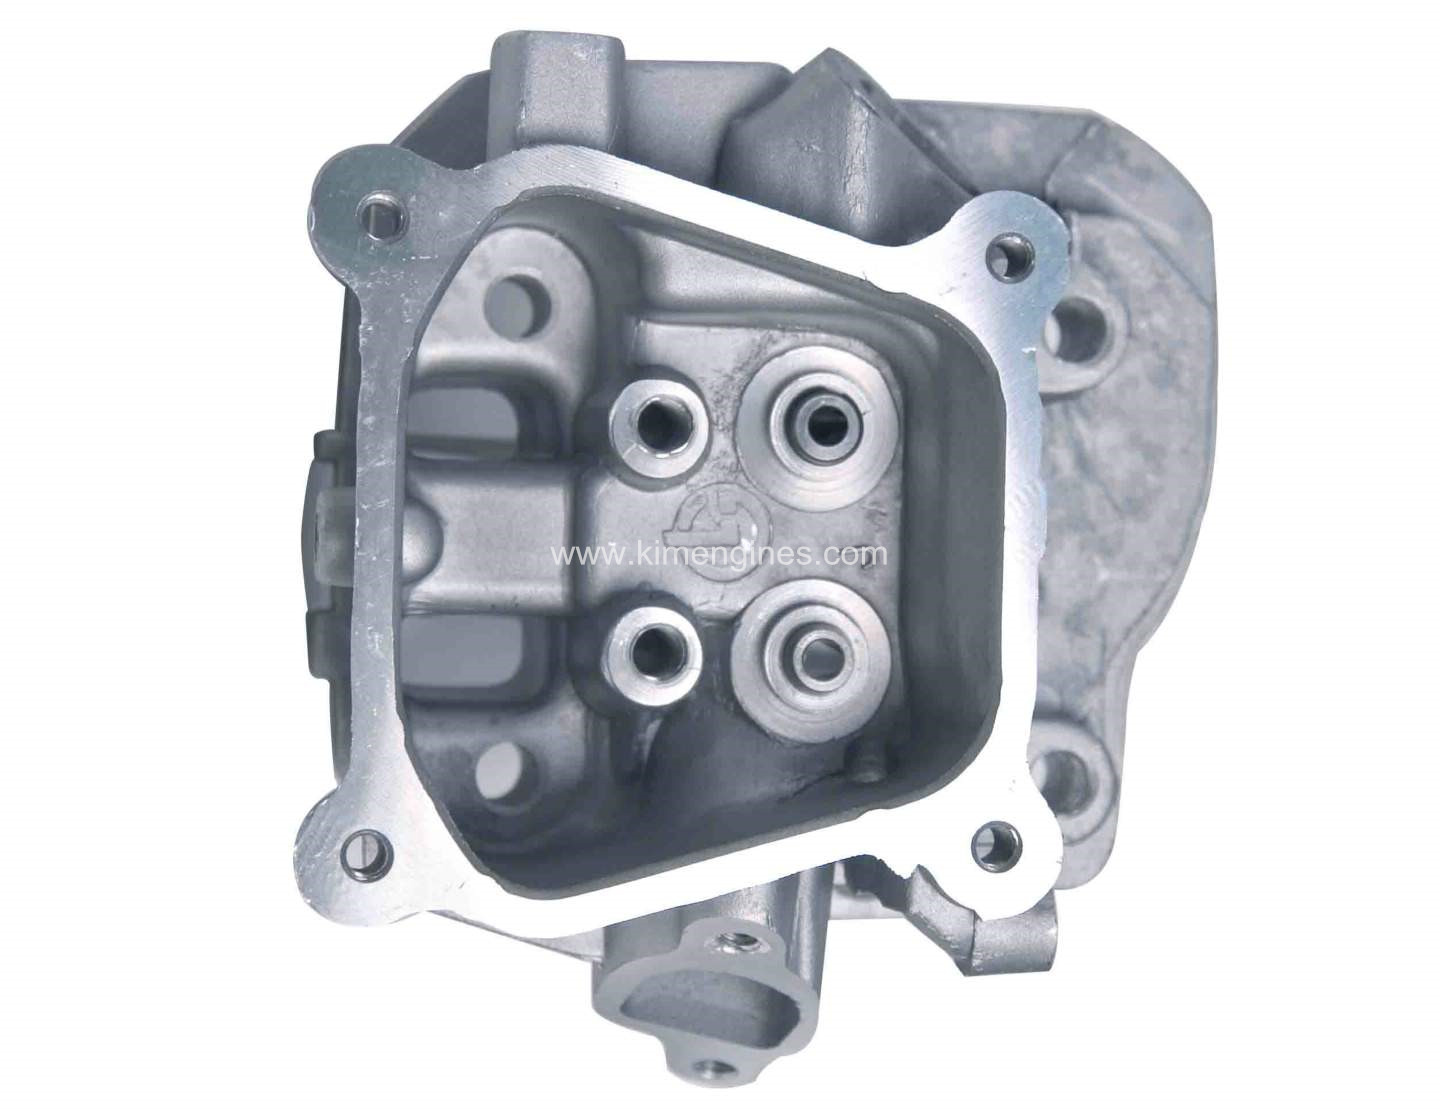 Cylinder Heads for generator